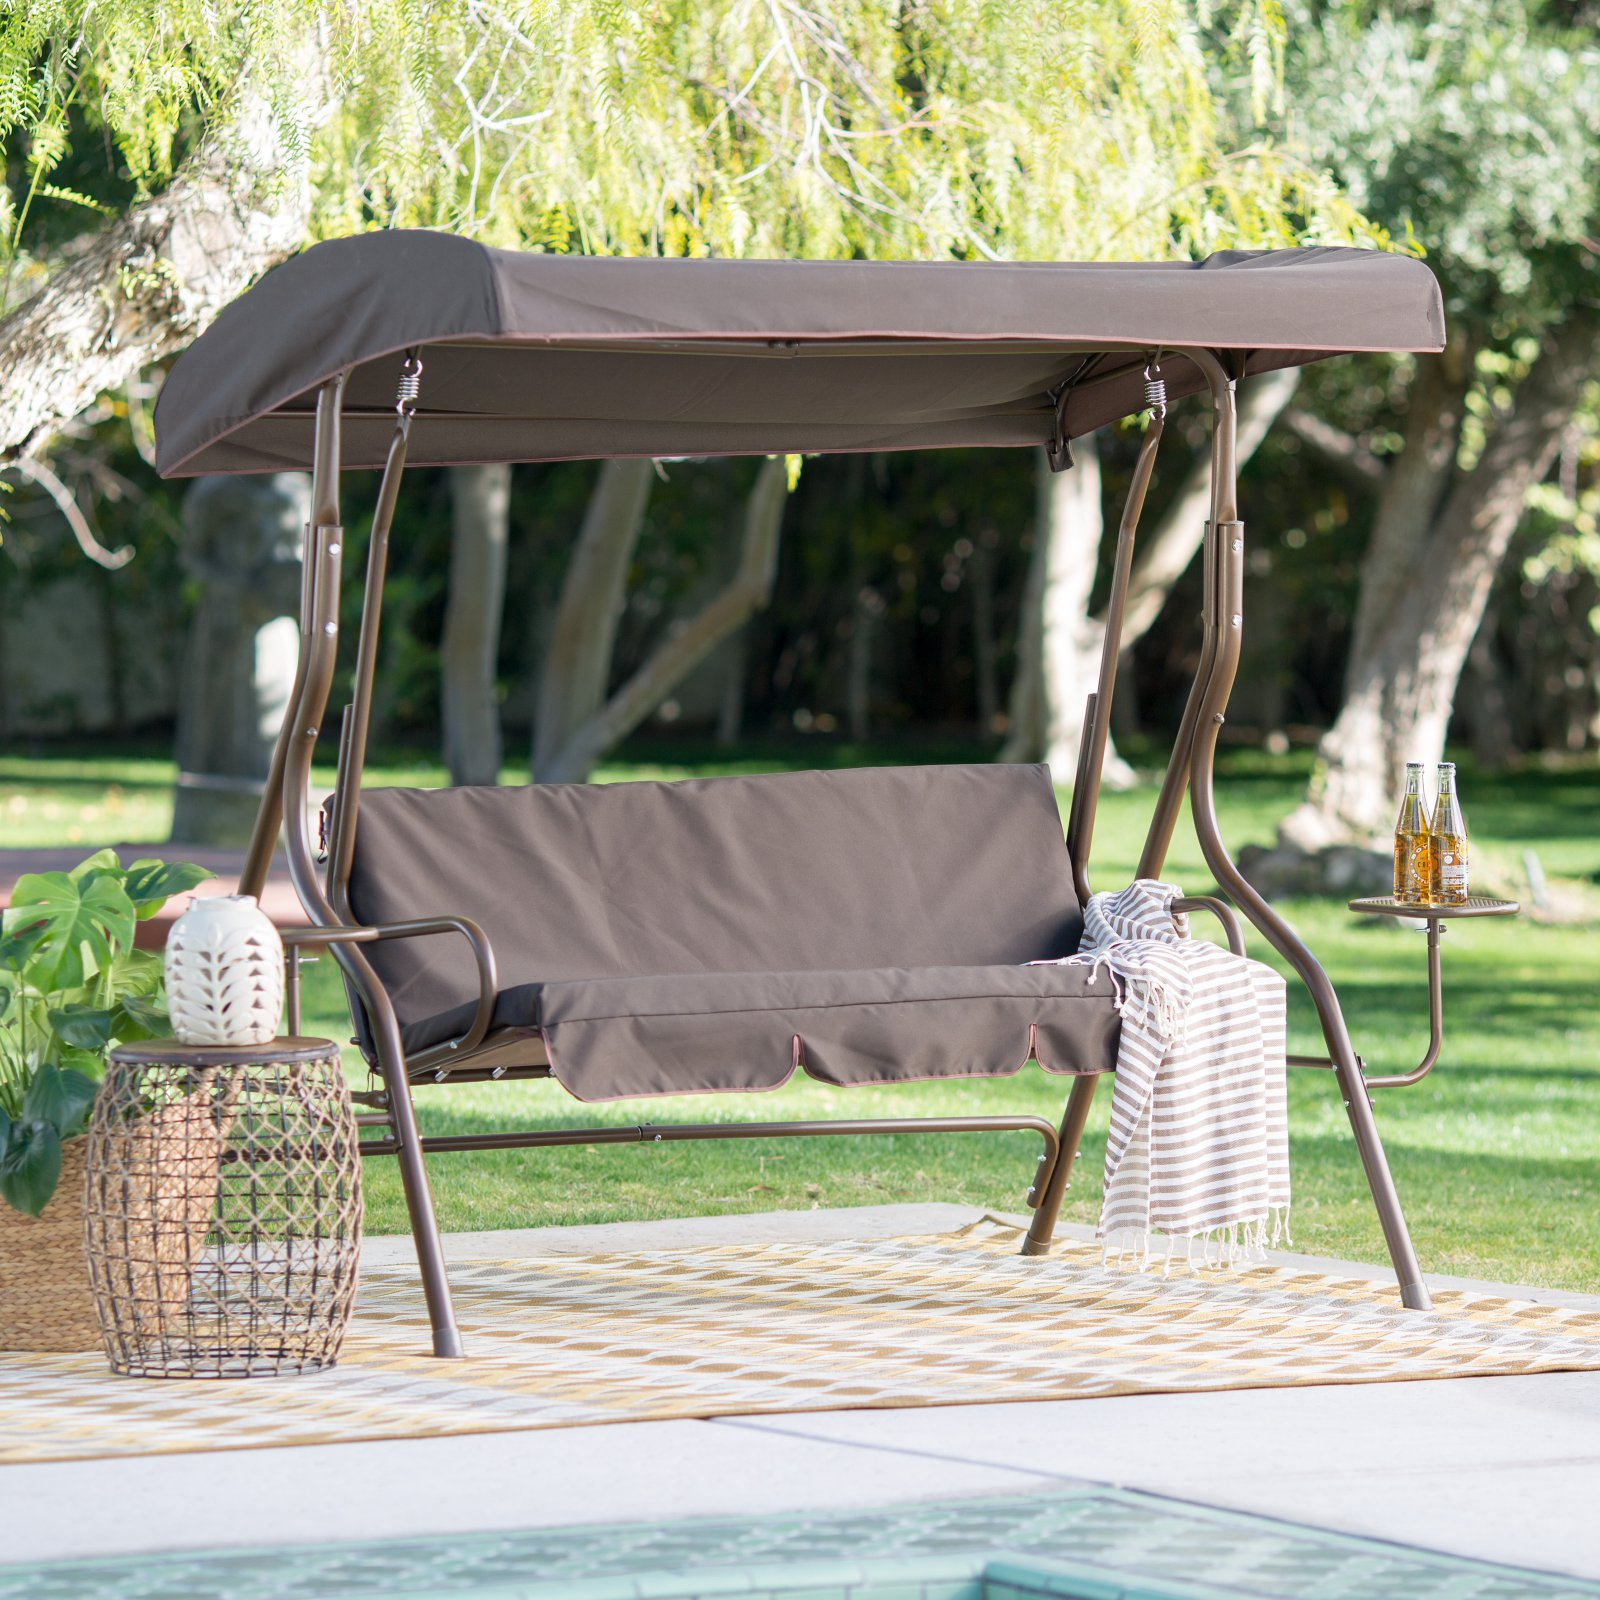 Coral Coast Lakewood 2 Person Adjustable Tilt Canopy Metal Swing With Side  Tables – Walmart Intended For 2 Person Adjustable Tilt Canopy Patio Loveseat Porch Swings (Image 11 of 25)